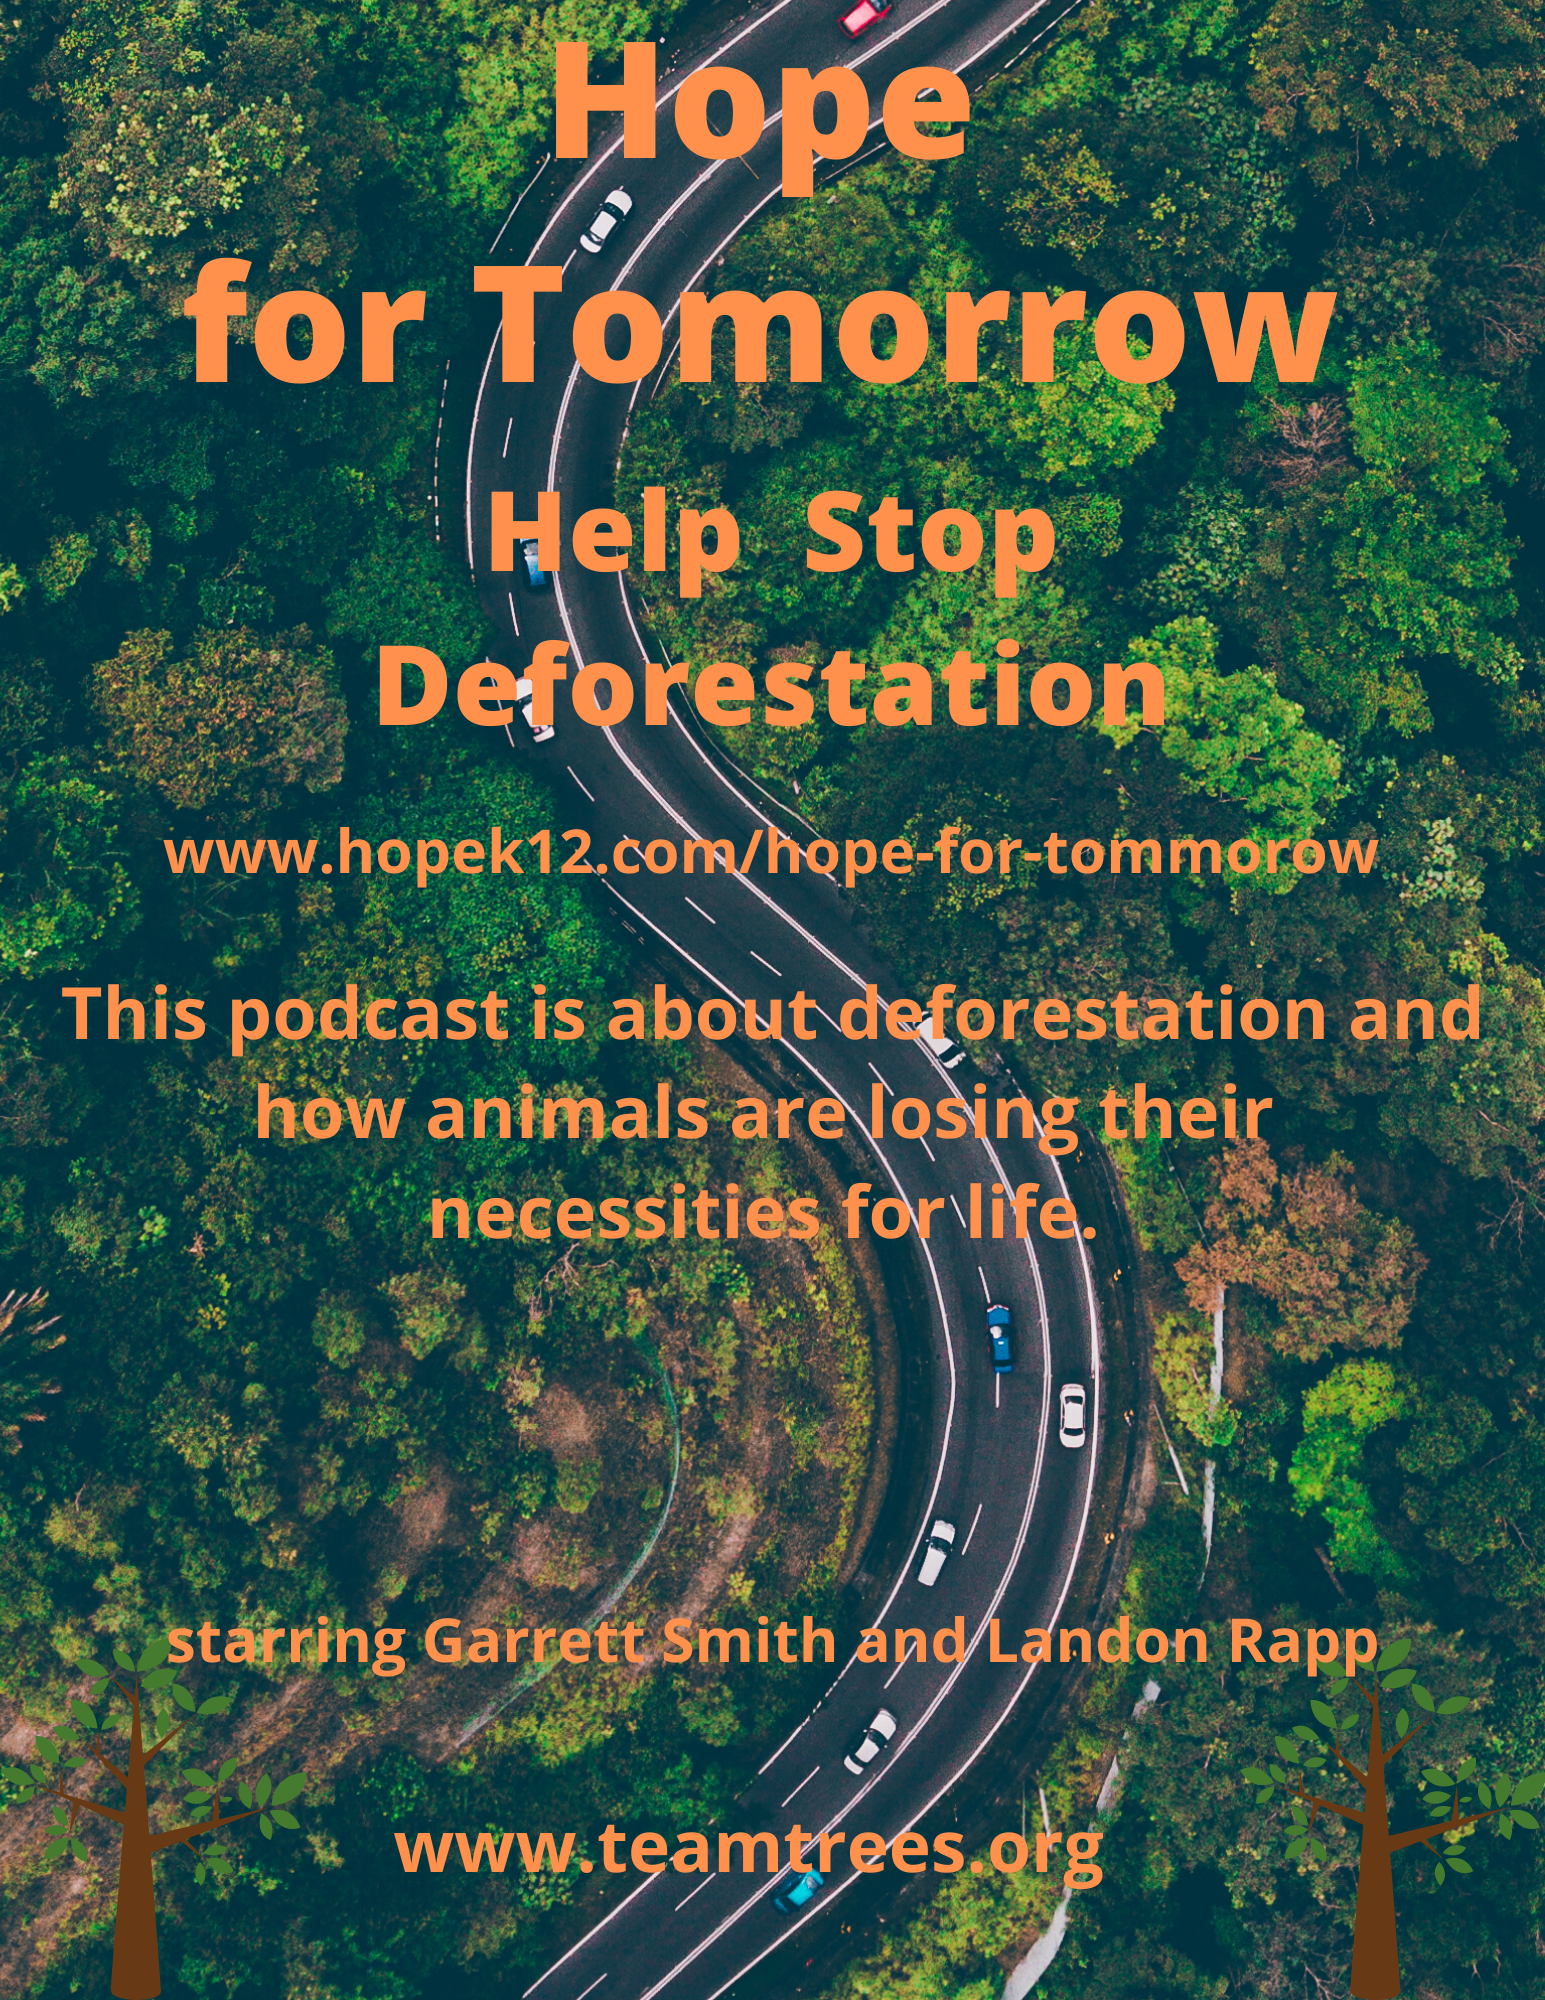 Deforestation Podcast by Middle School Students